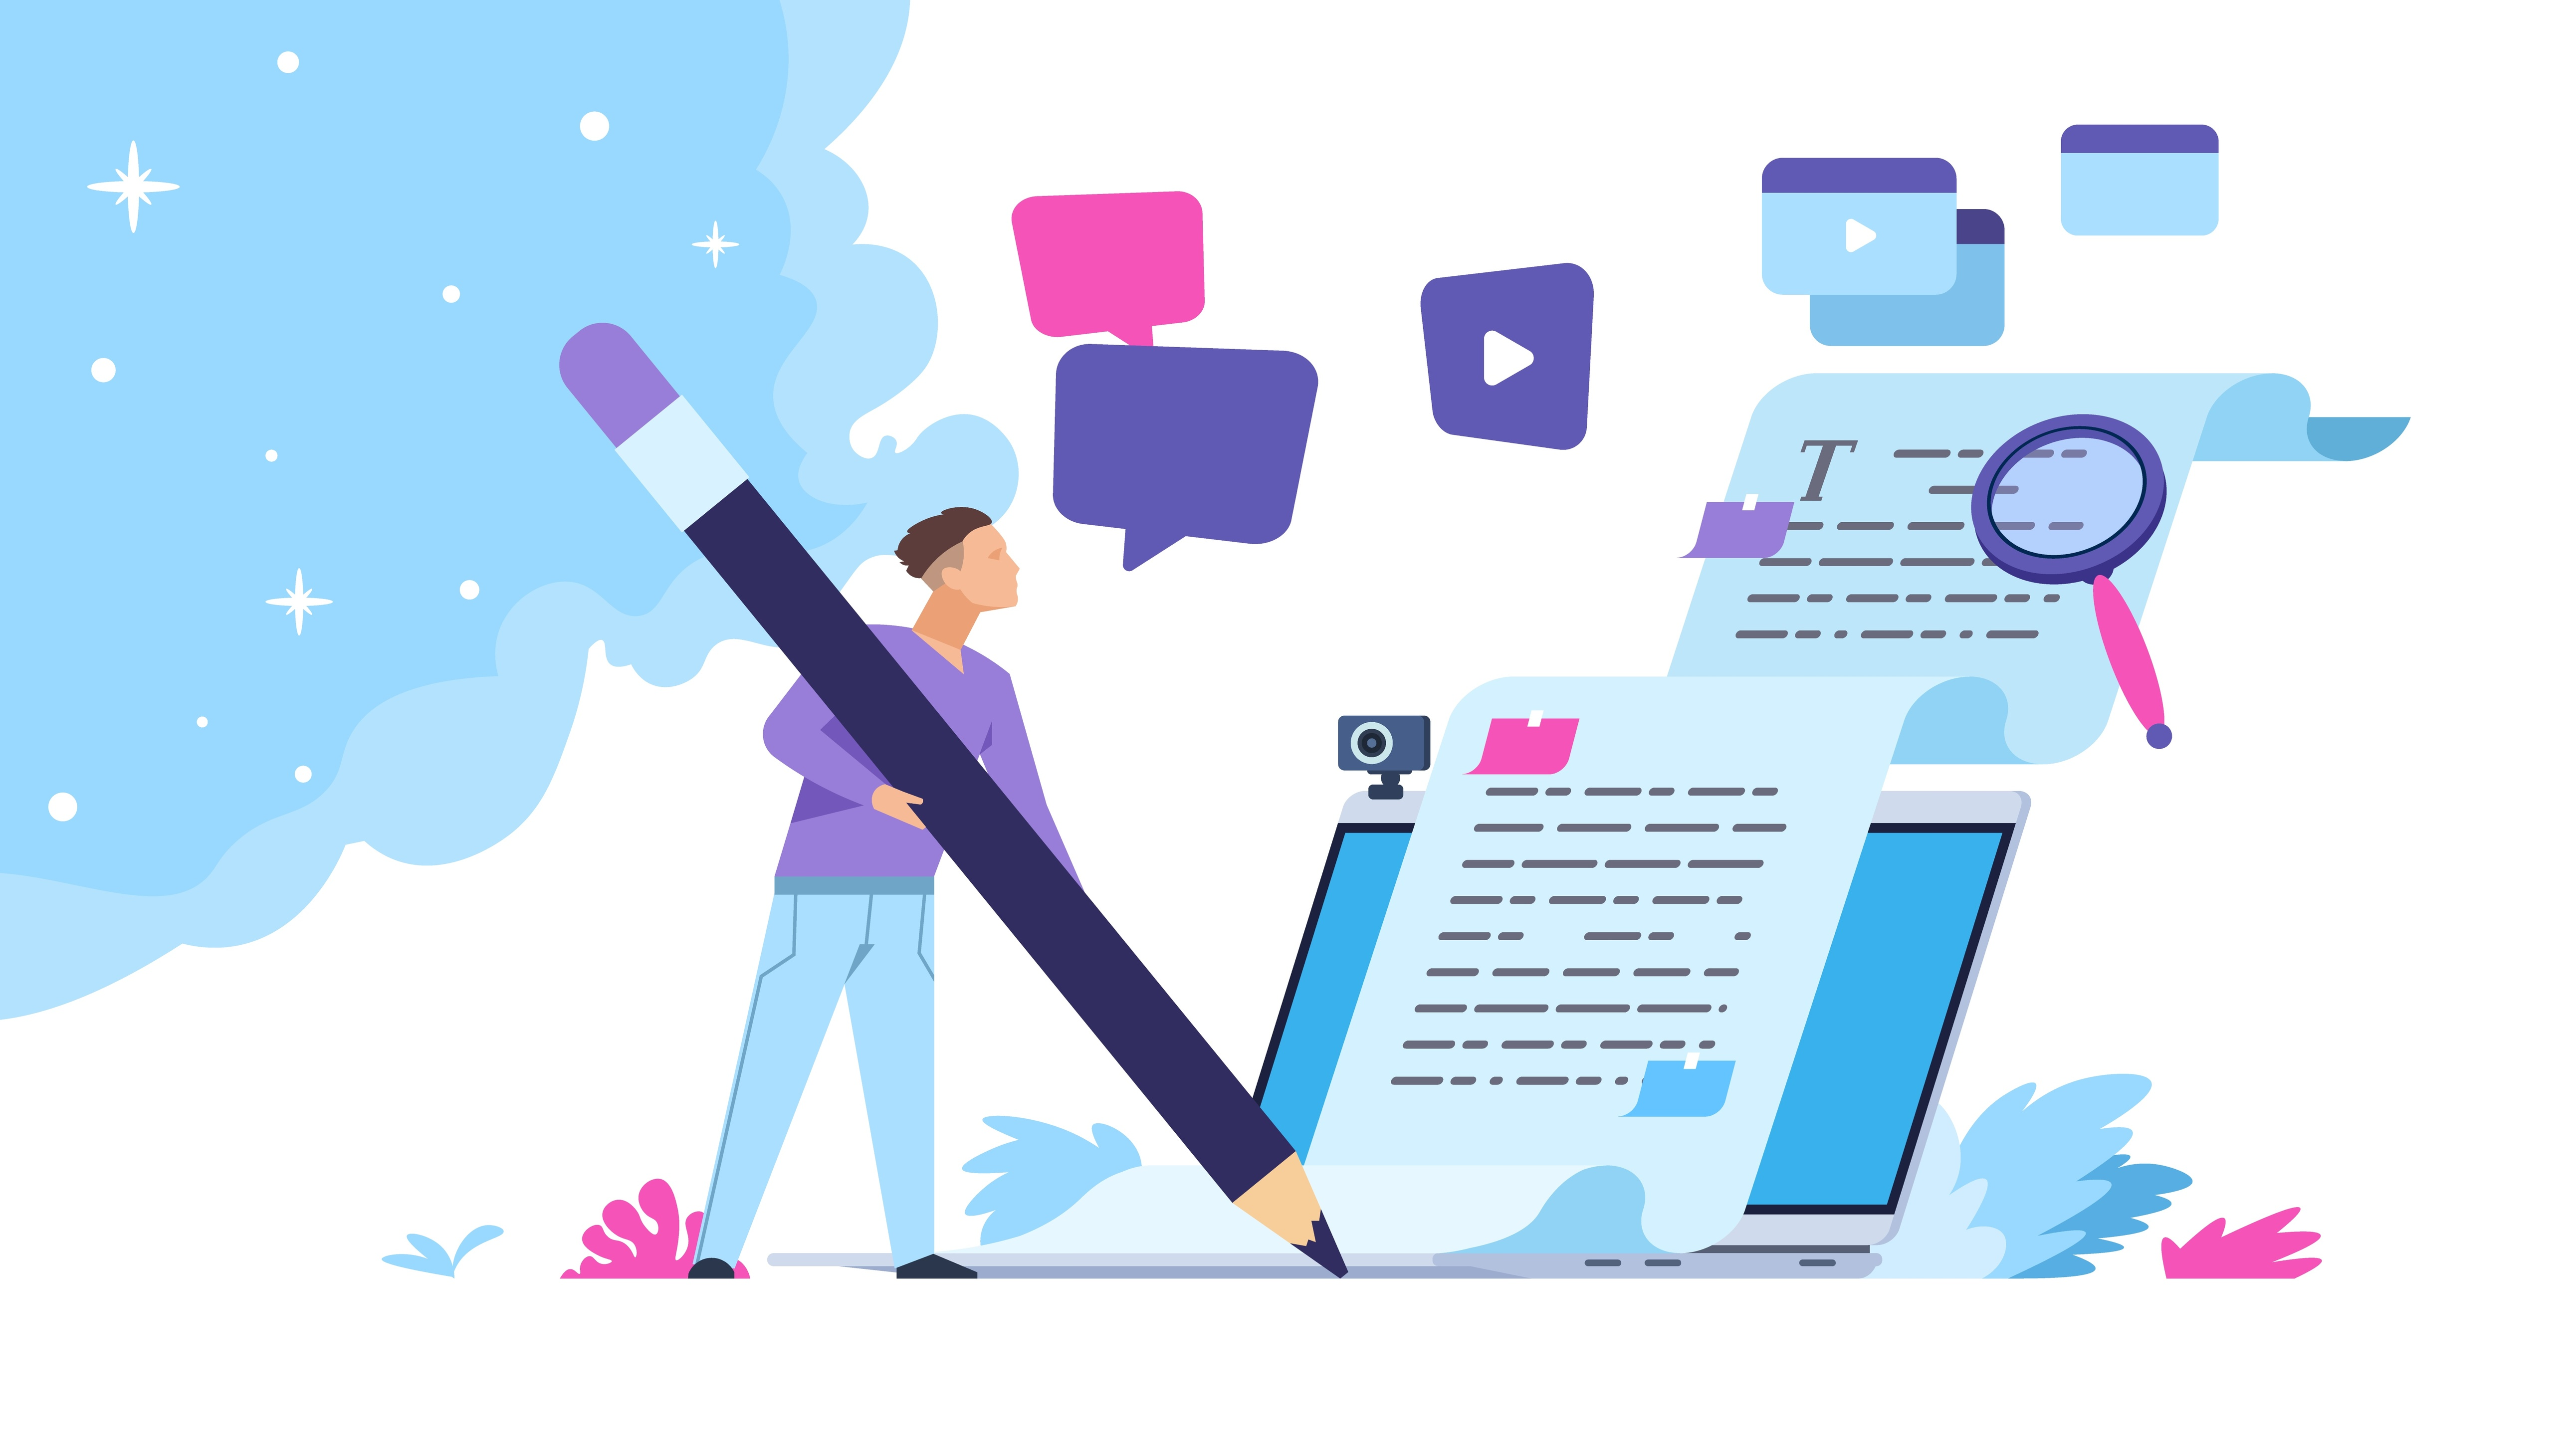 Vector illustration creative online blog image with pencil and essays